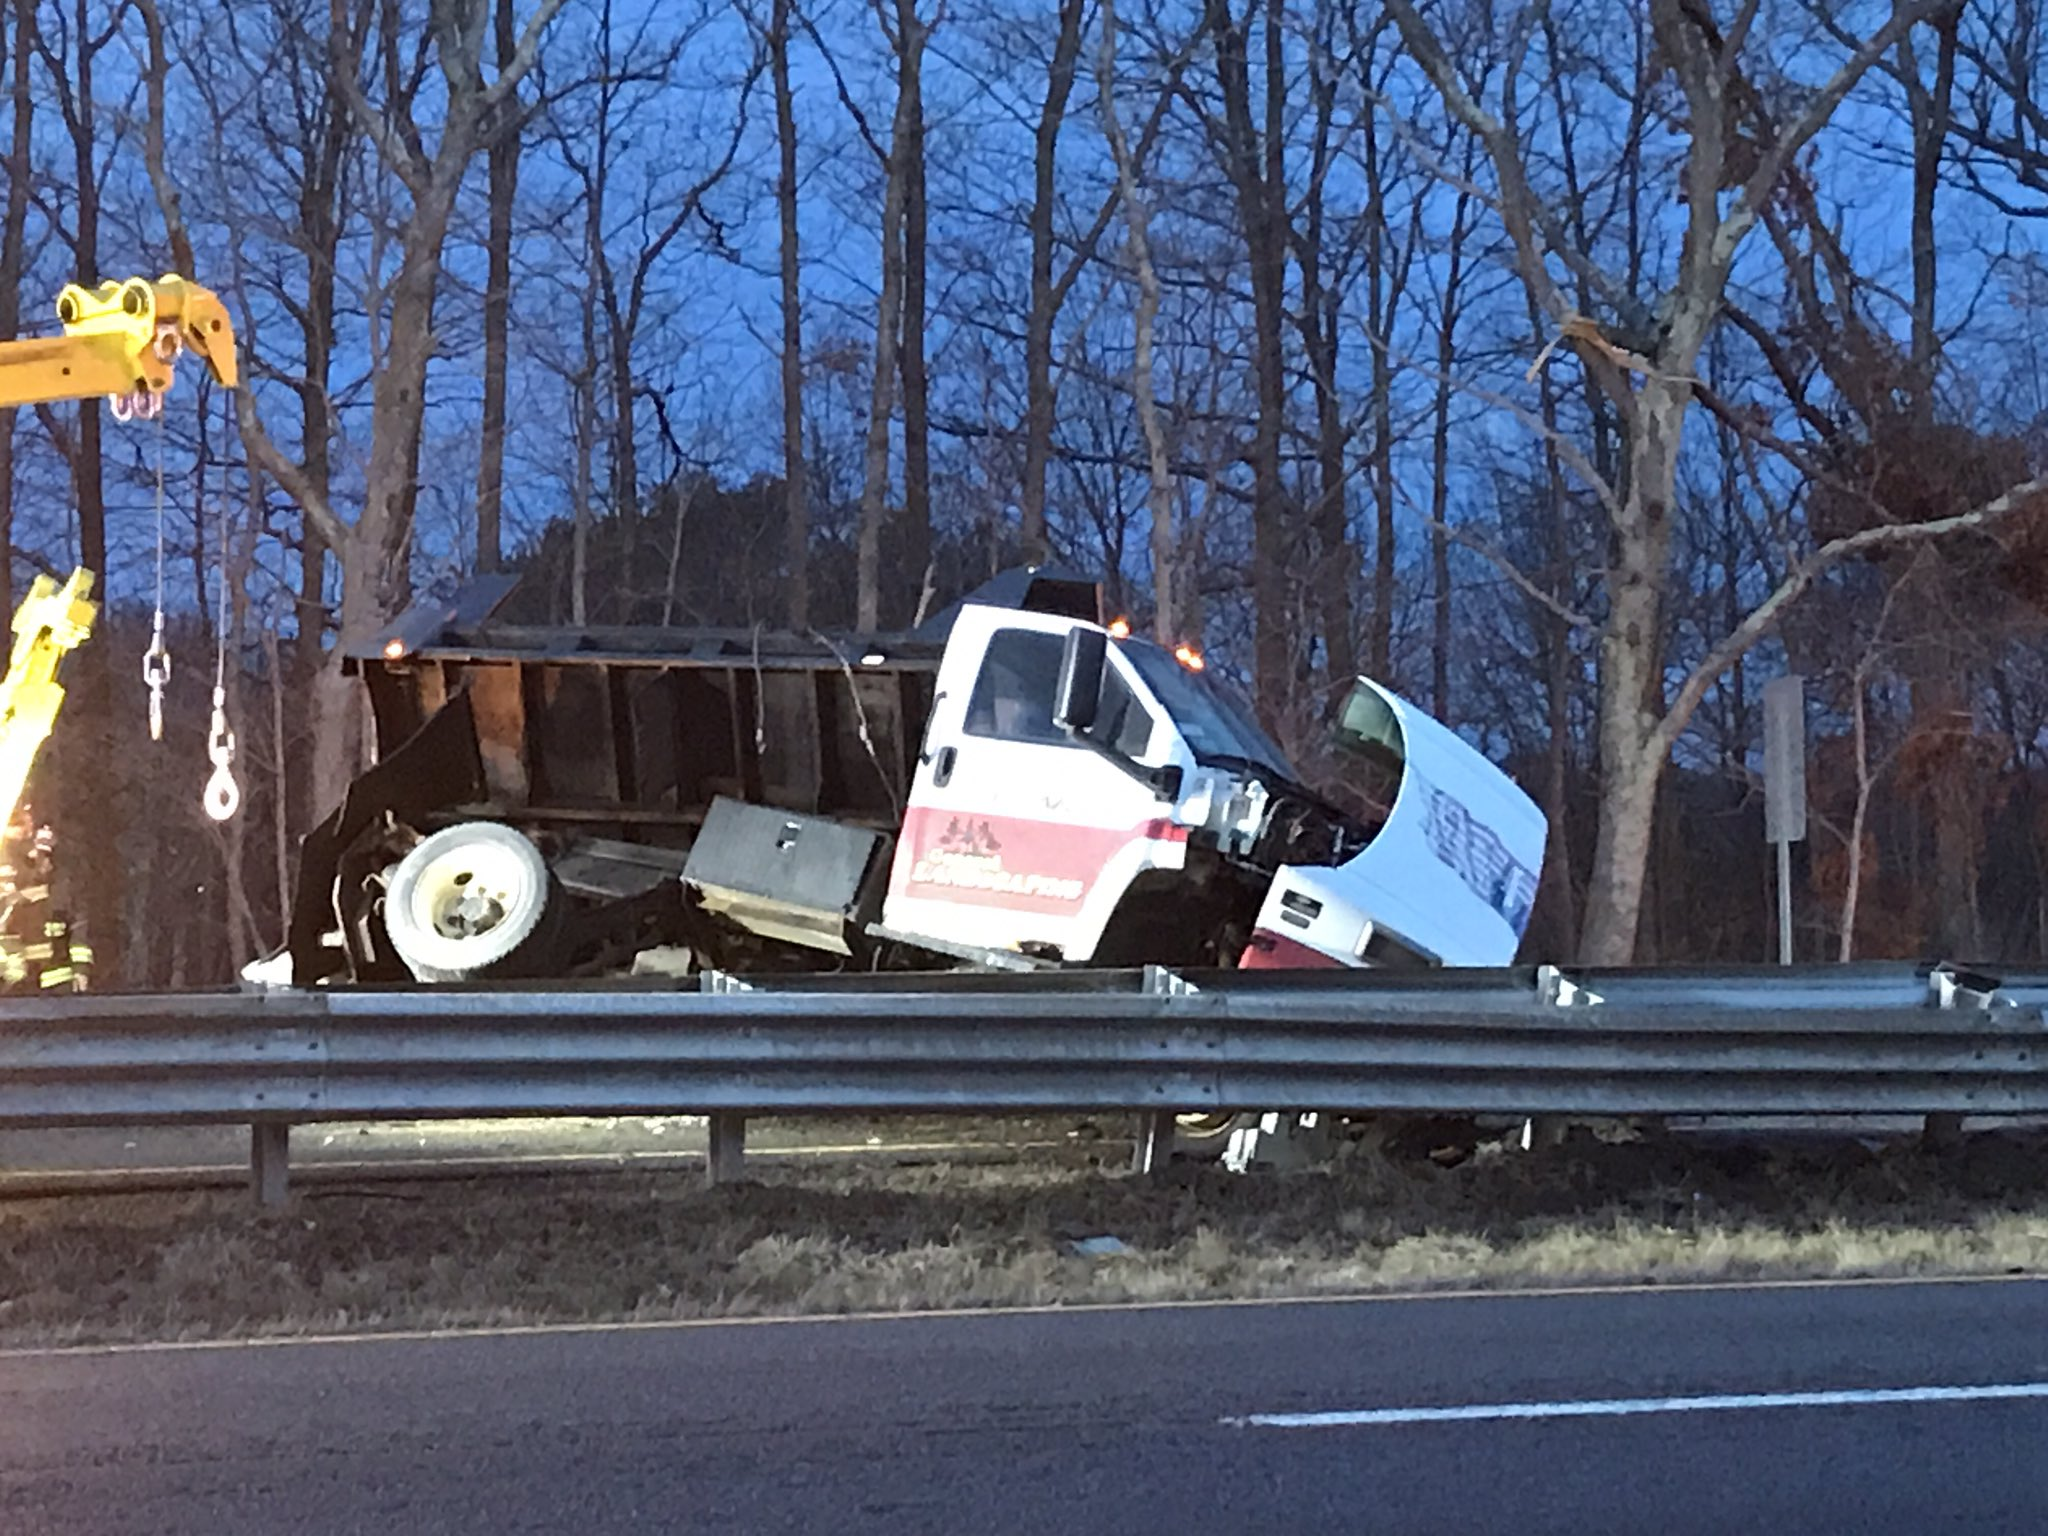 A dump truck and at least two cars were involved in a crash on Route 24 in Fall River, Thursday, Feb. 8, 2018. (WJAR)